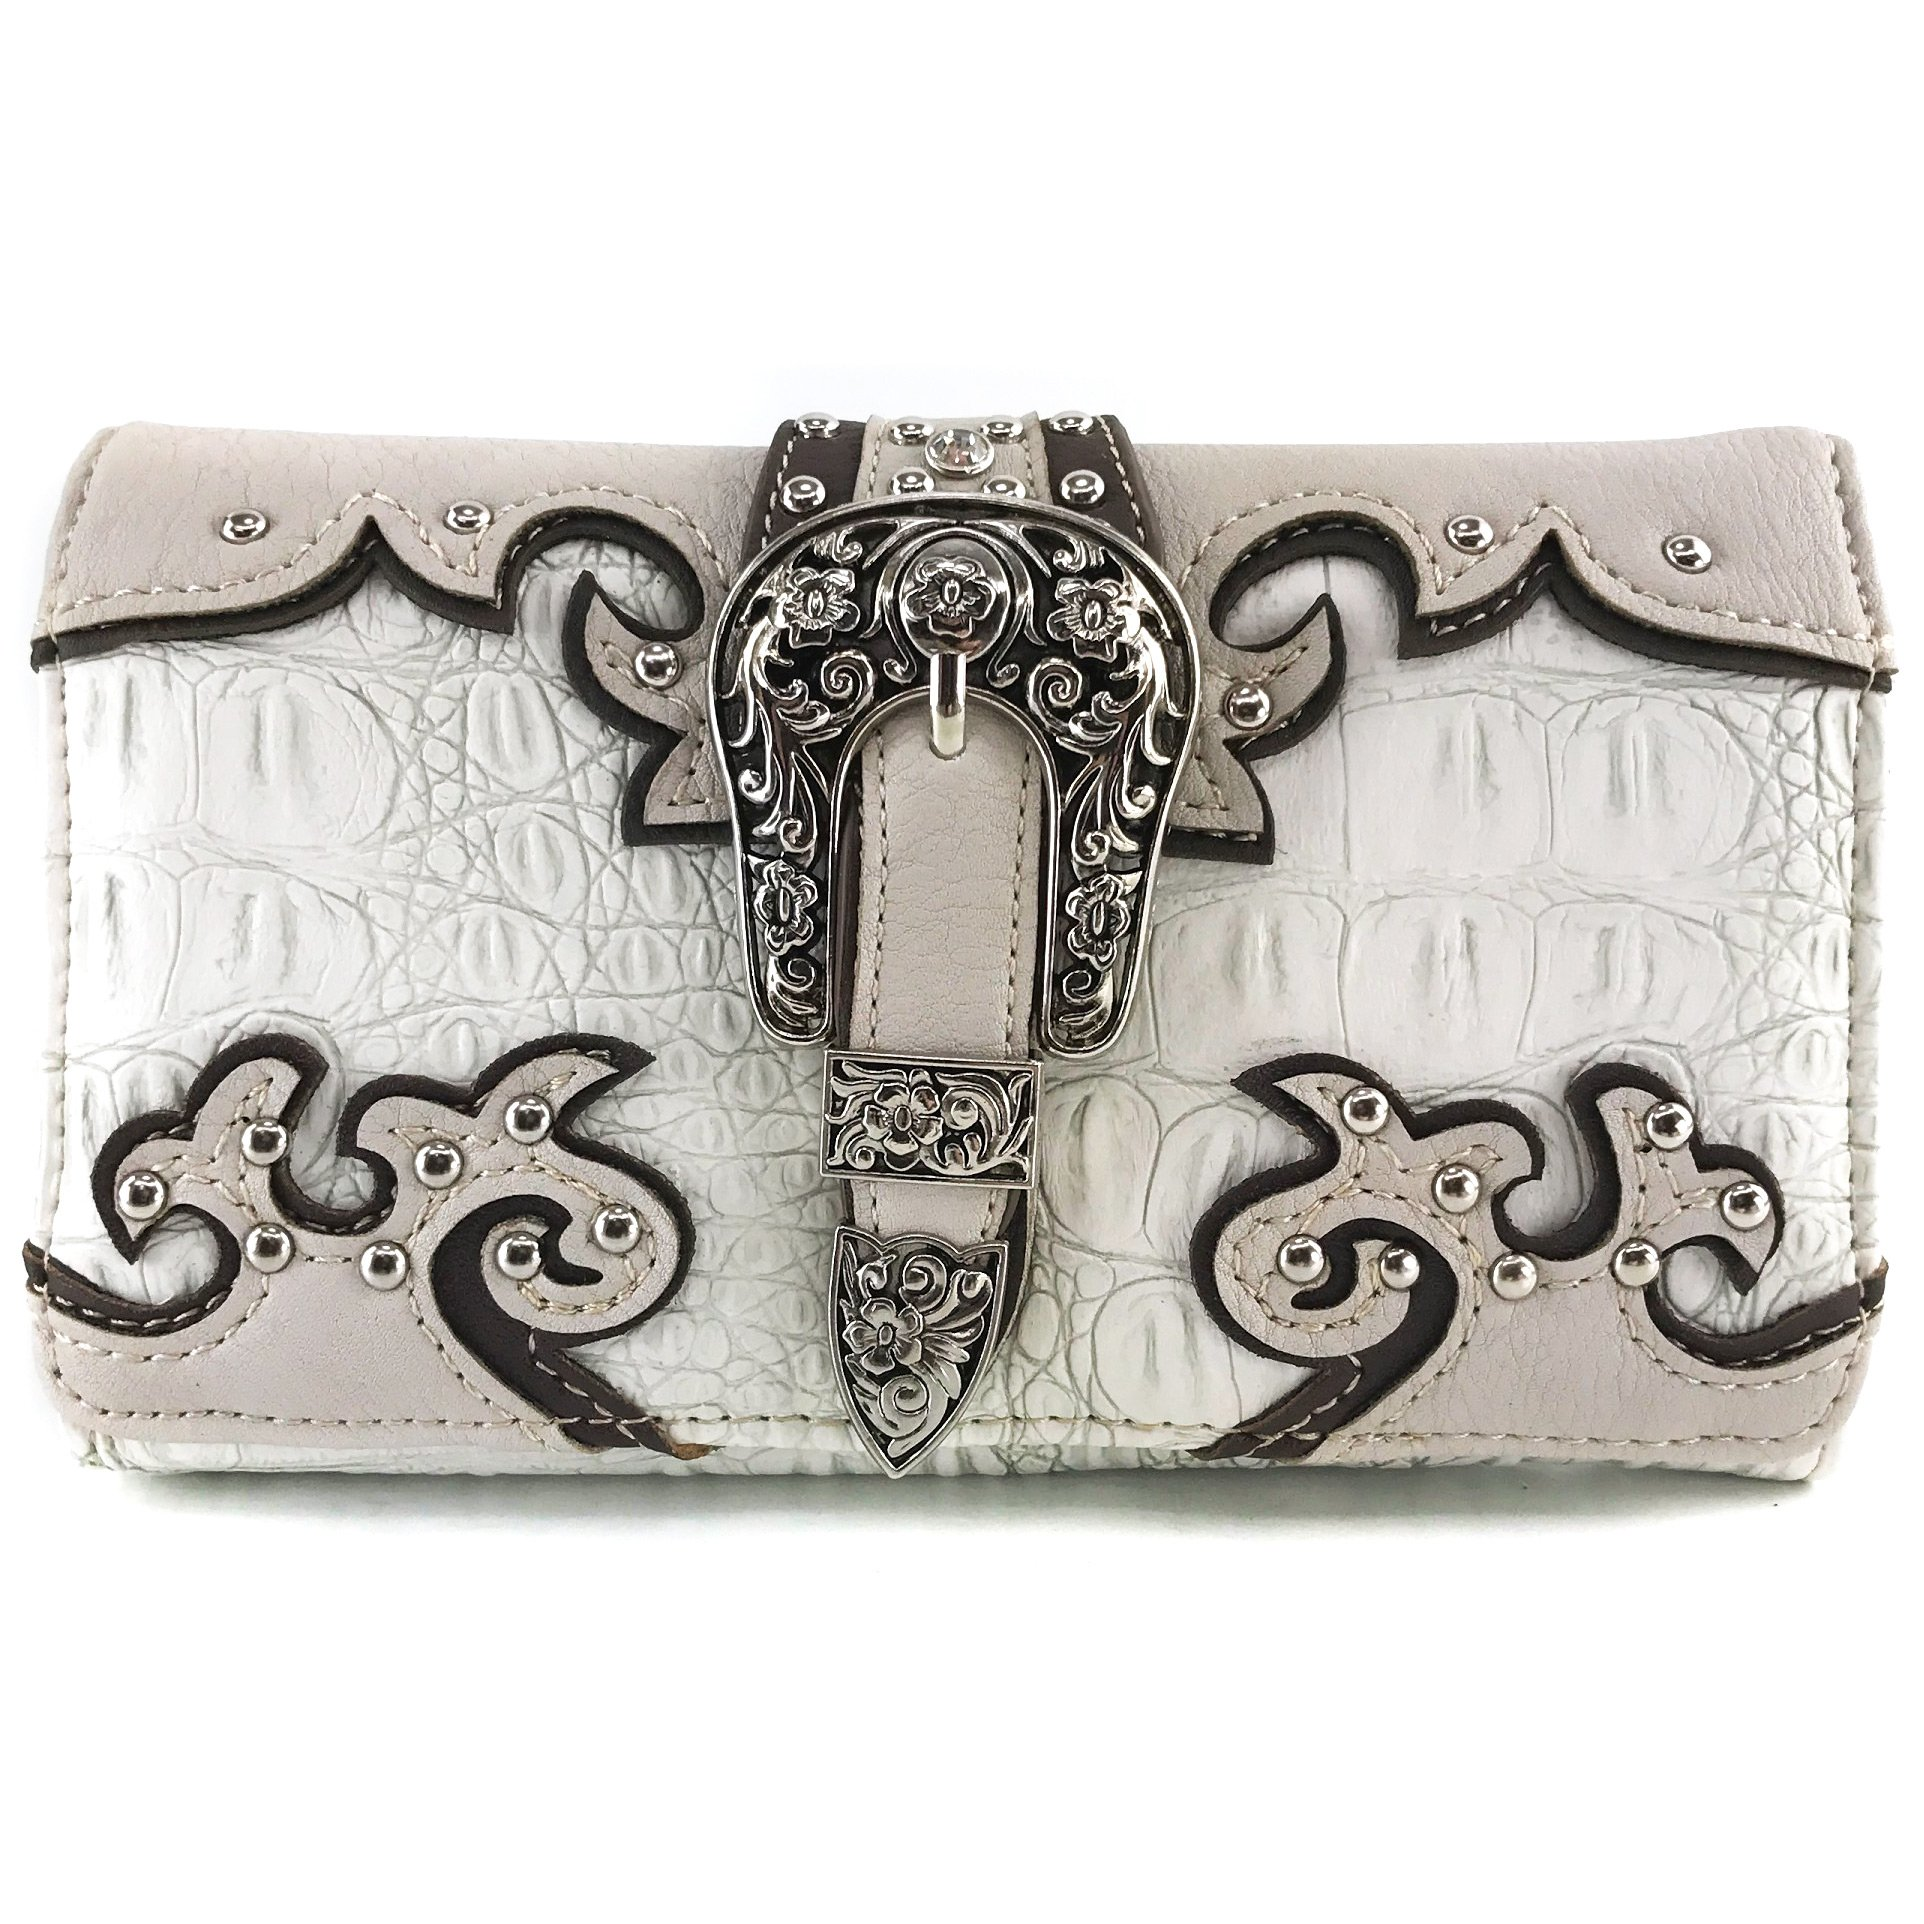 Justin West Western Tooled Croc Animal Faux Leather Silver Buckle Studded Wristlet Trifold Wallet Attachable Long Strap (Beige)